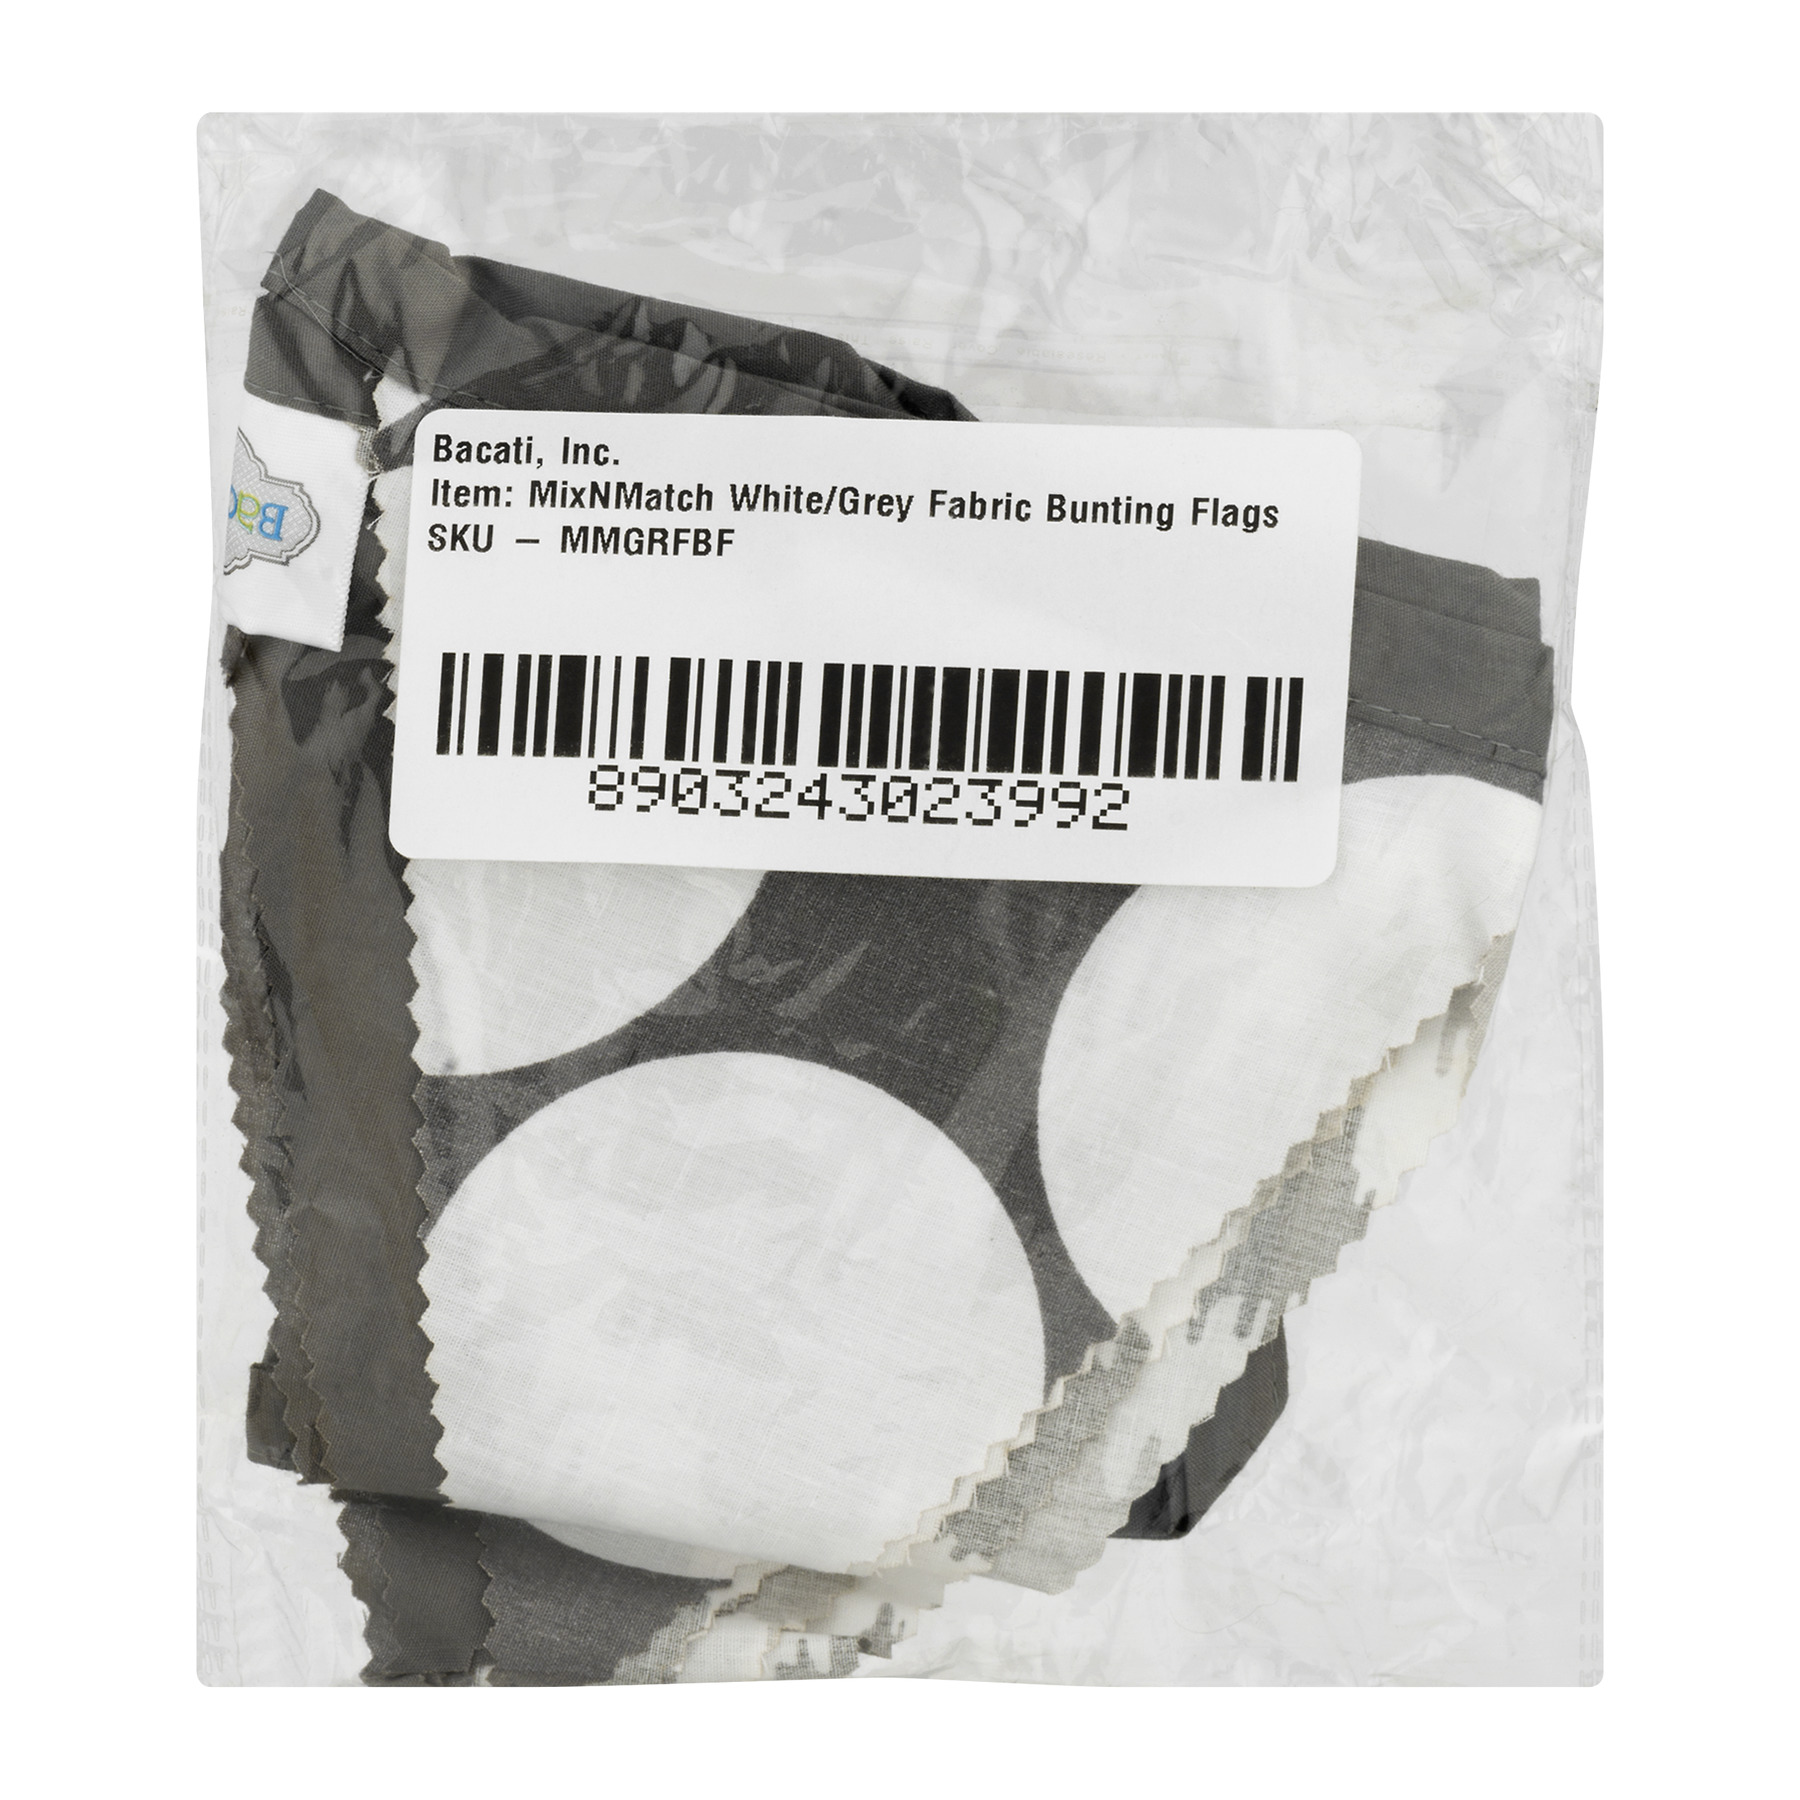 Bacati Fabric Bunting Flags White/Grey Mix N Match, 1.0 CT